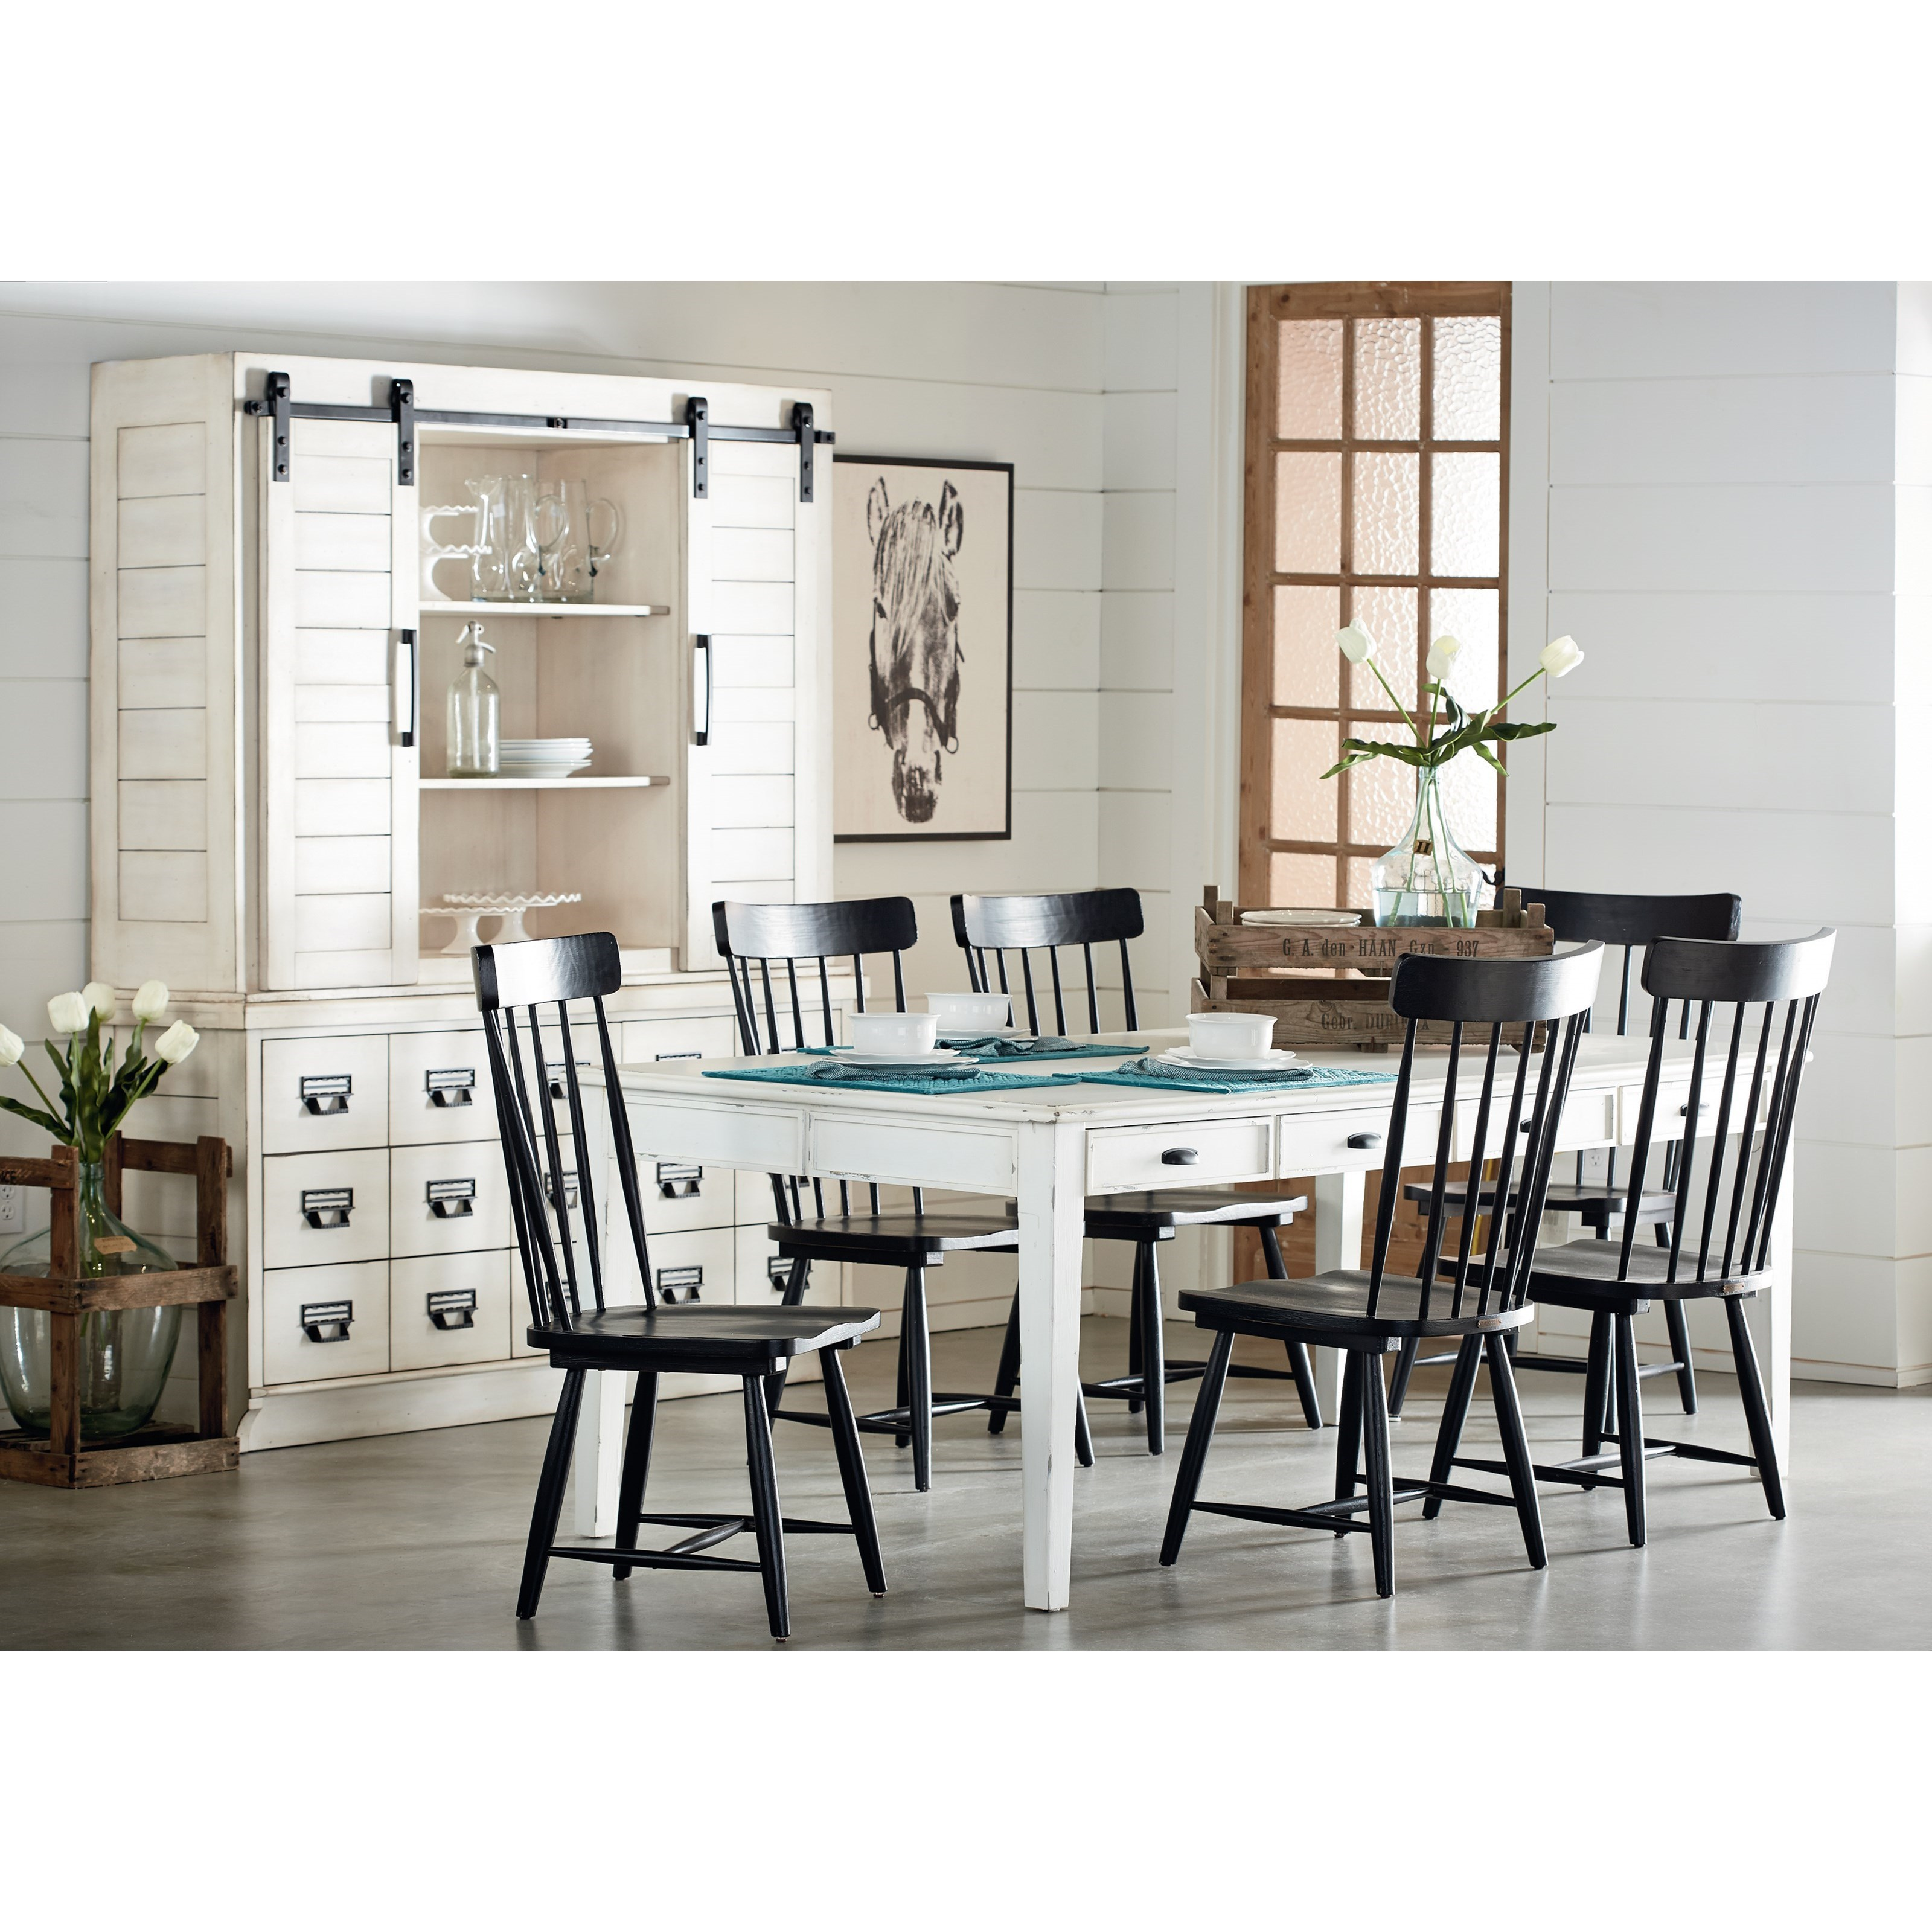 Magnolia Home By Joanna Gaines Farmhouse Kitchen Dining Group Jacksonville Furniture Mart Formal Dining Room Groups